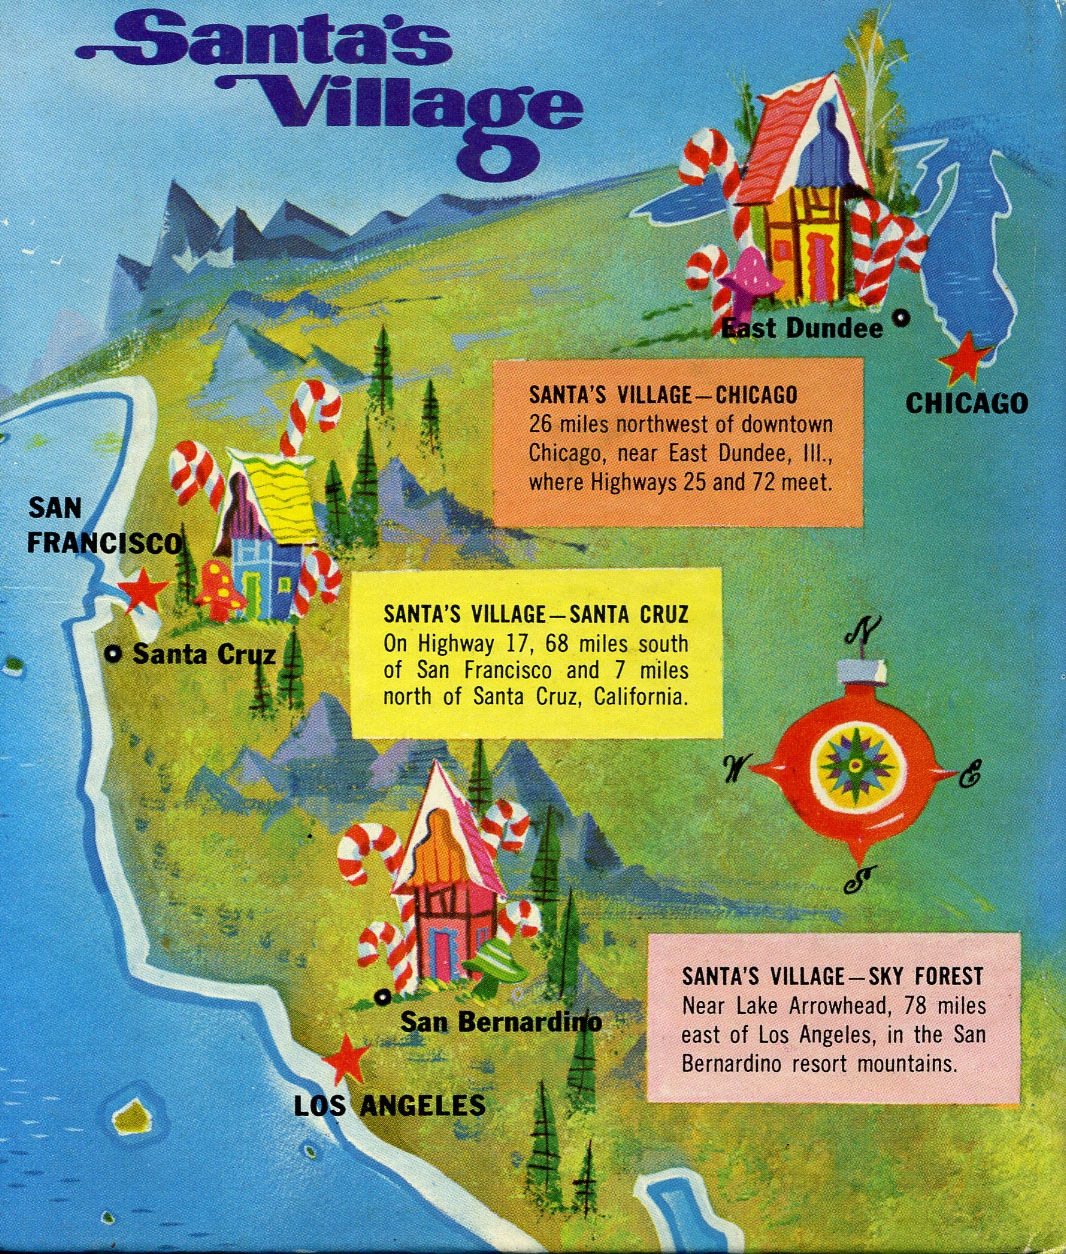 Santa's Village map of locations - 1958